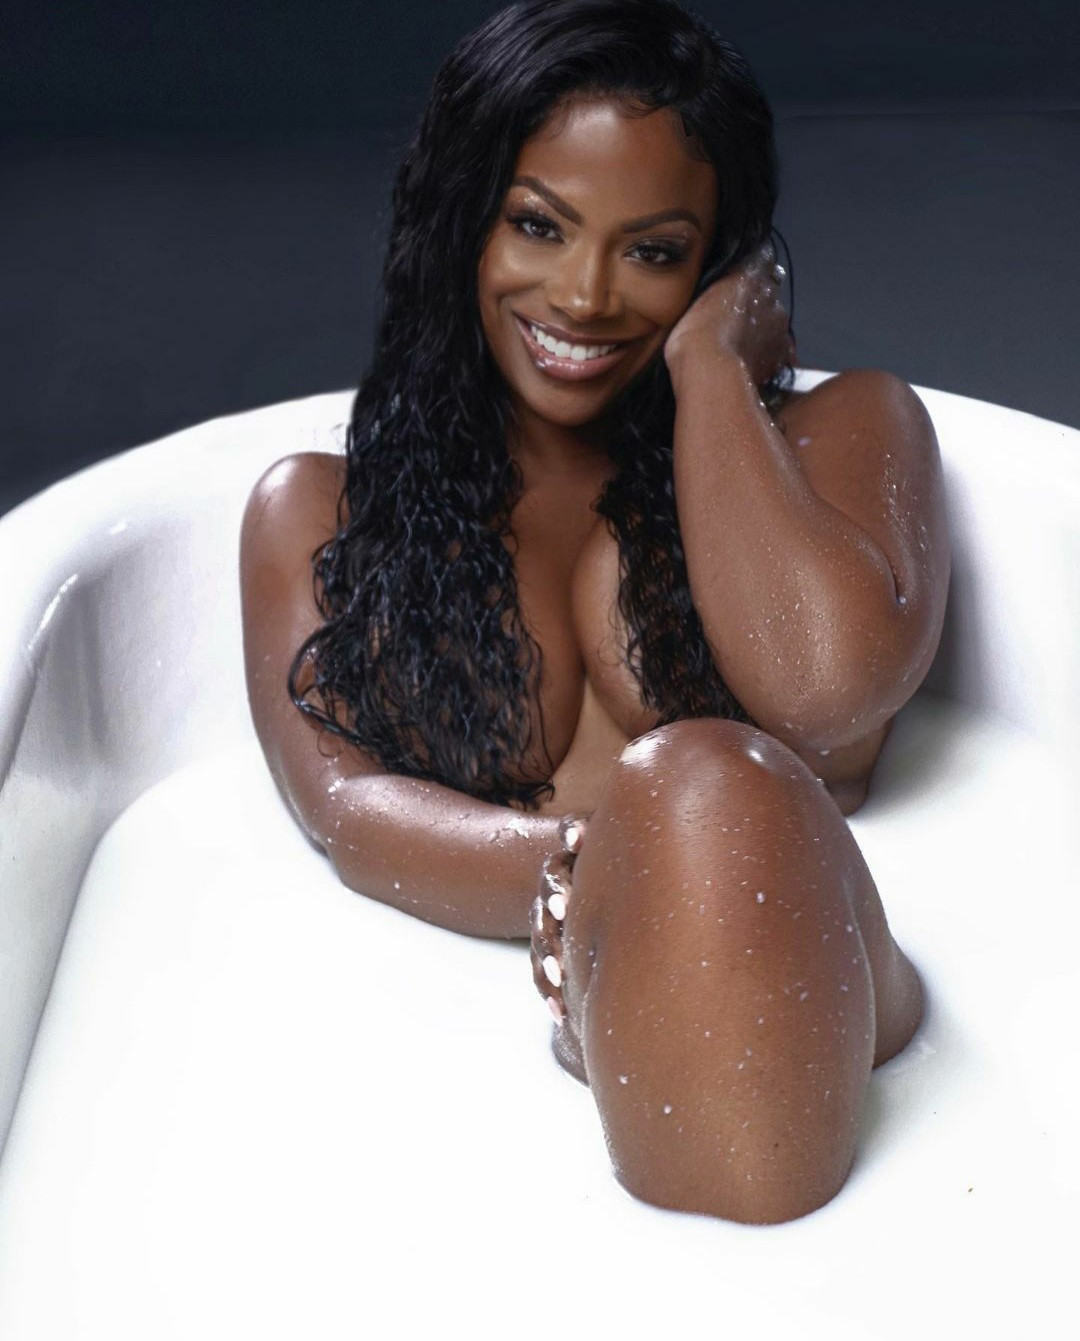 Kandi Burruss strips to her birthday suit as she poses in tub